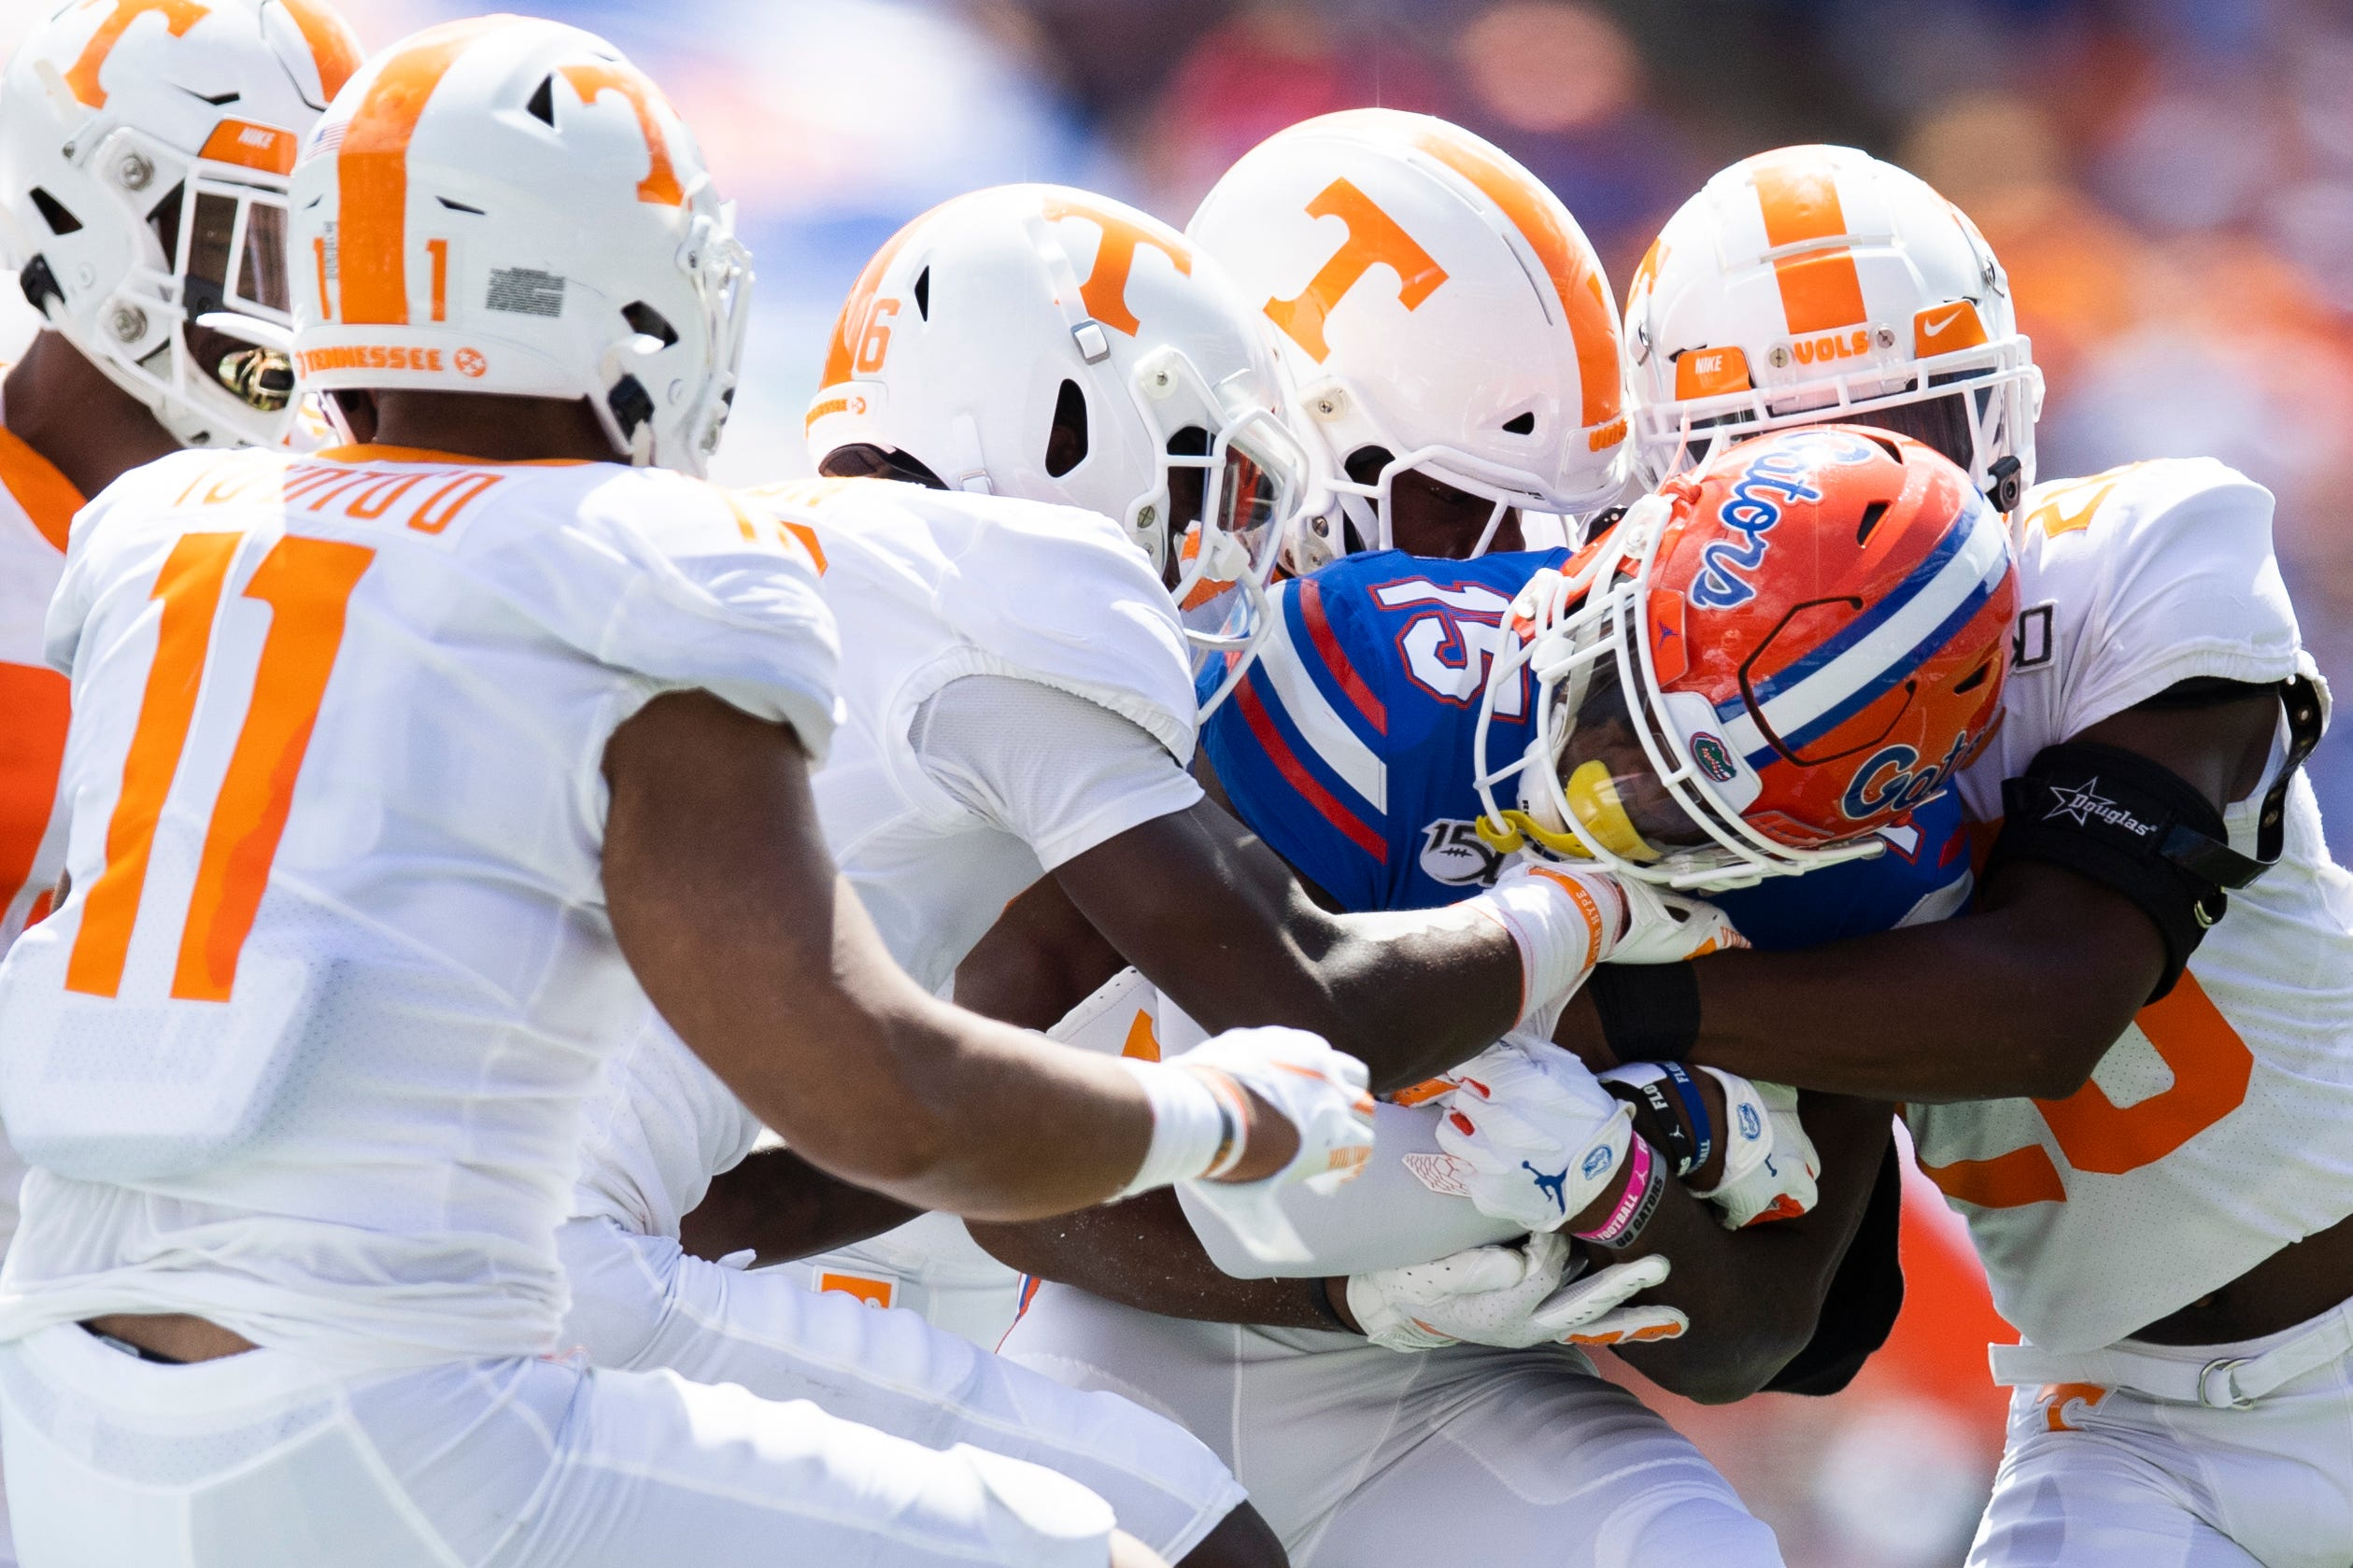 Tenneessee Vols football vs. Florida Gators game action in pictures